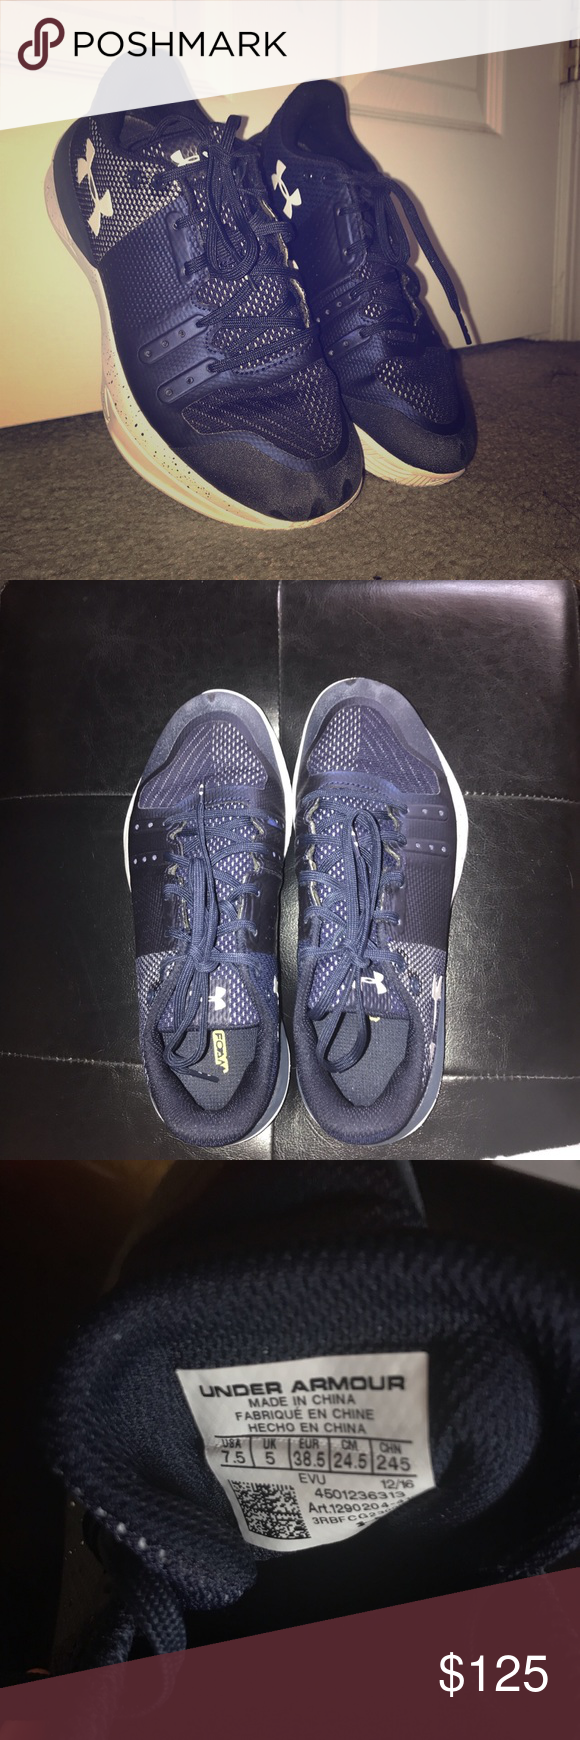 Under Armour Navy Blue Volleyball Shoes Volleyball Shoes Shoes Under Armour